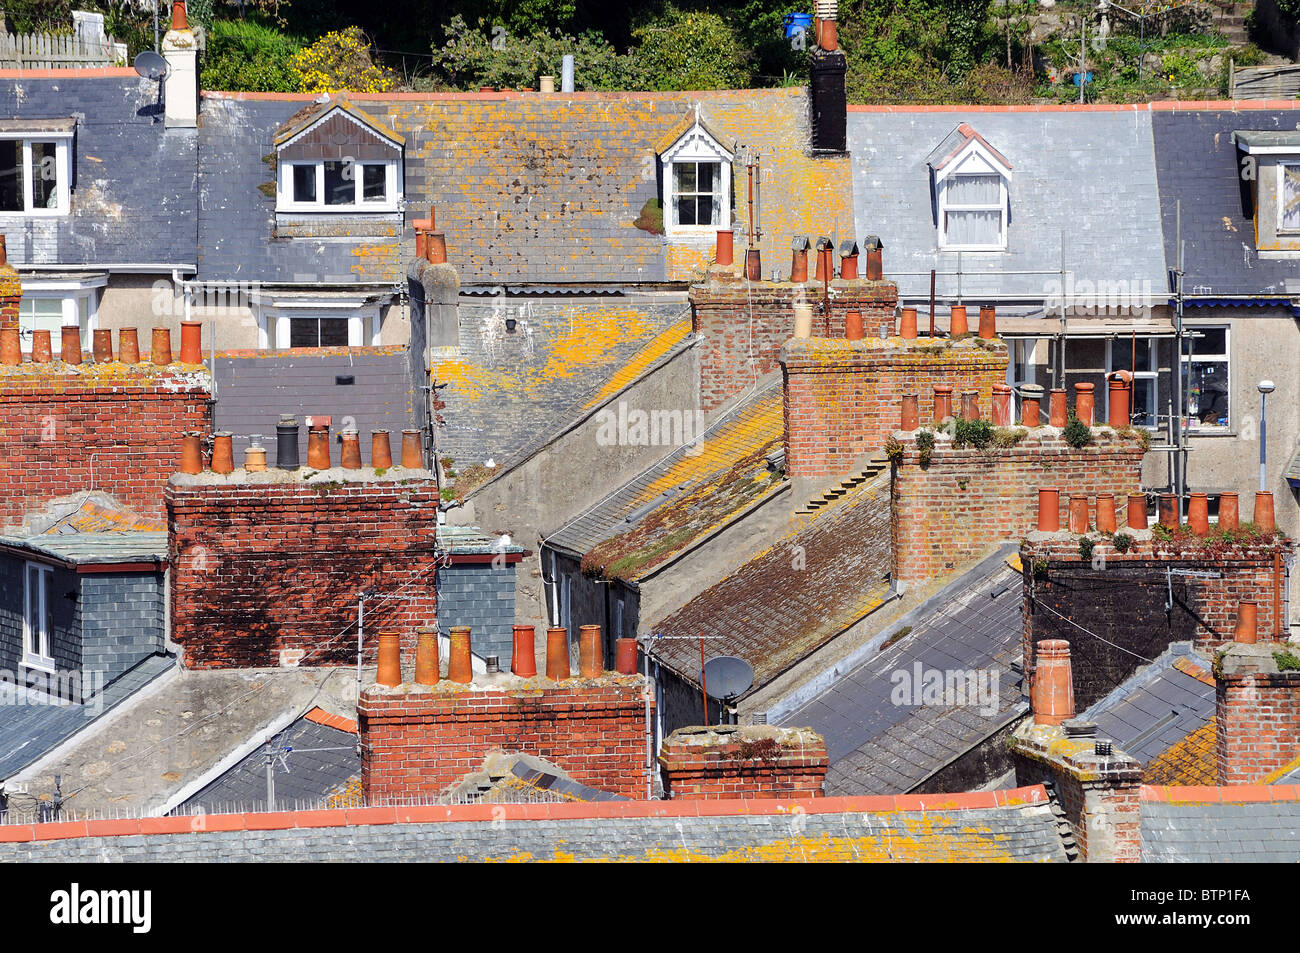 rooftops of houses in exeter, devon, uk - Stock Image